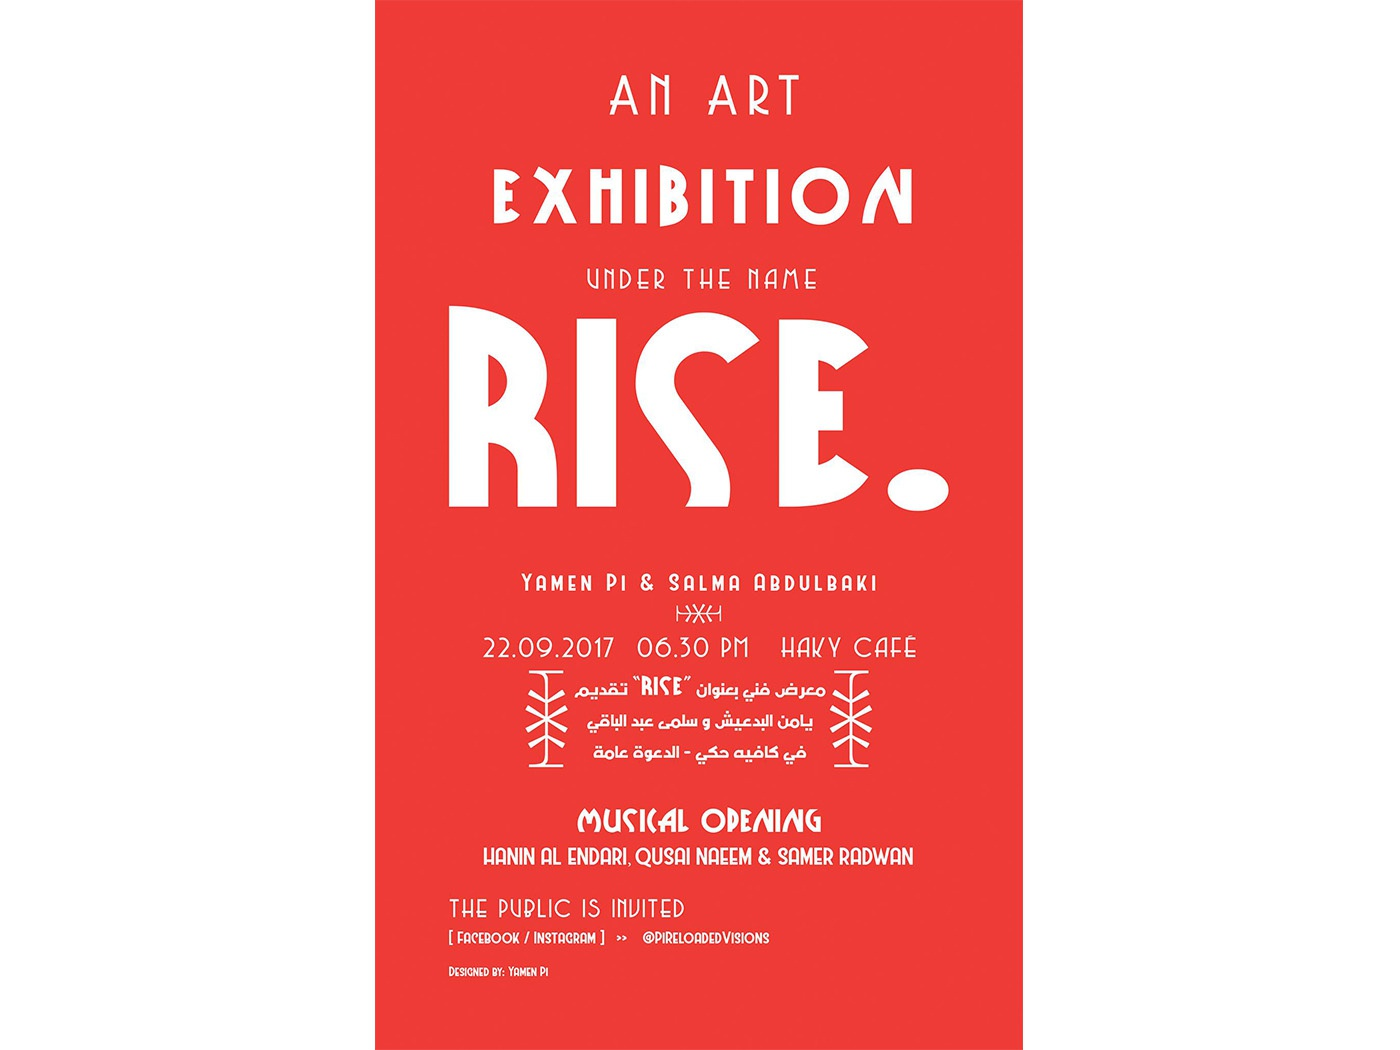 RISE Exhibition - Poster I exhibition poster artist rise syria music painting drawing artistic art design graphic graphic design